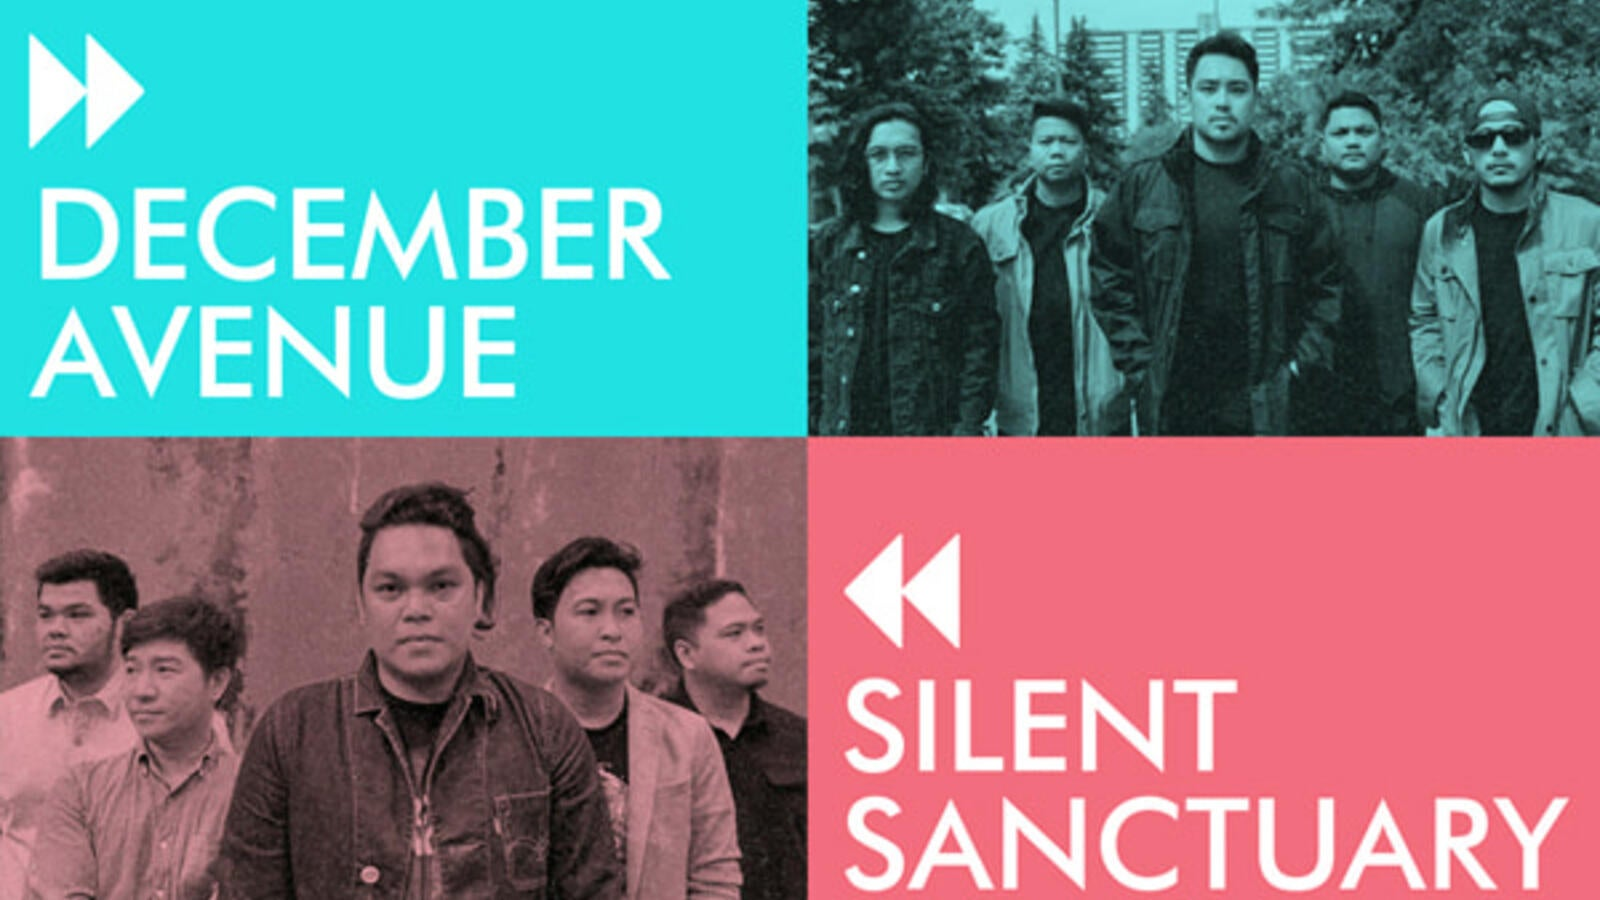 December Avenue and Silent Sanctuary Live on Jan 10th at Dubai Duty Free Tennis Stadium